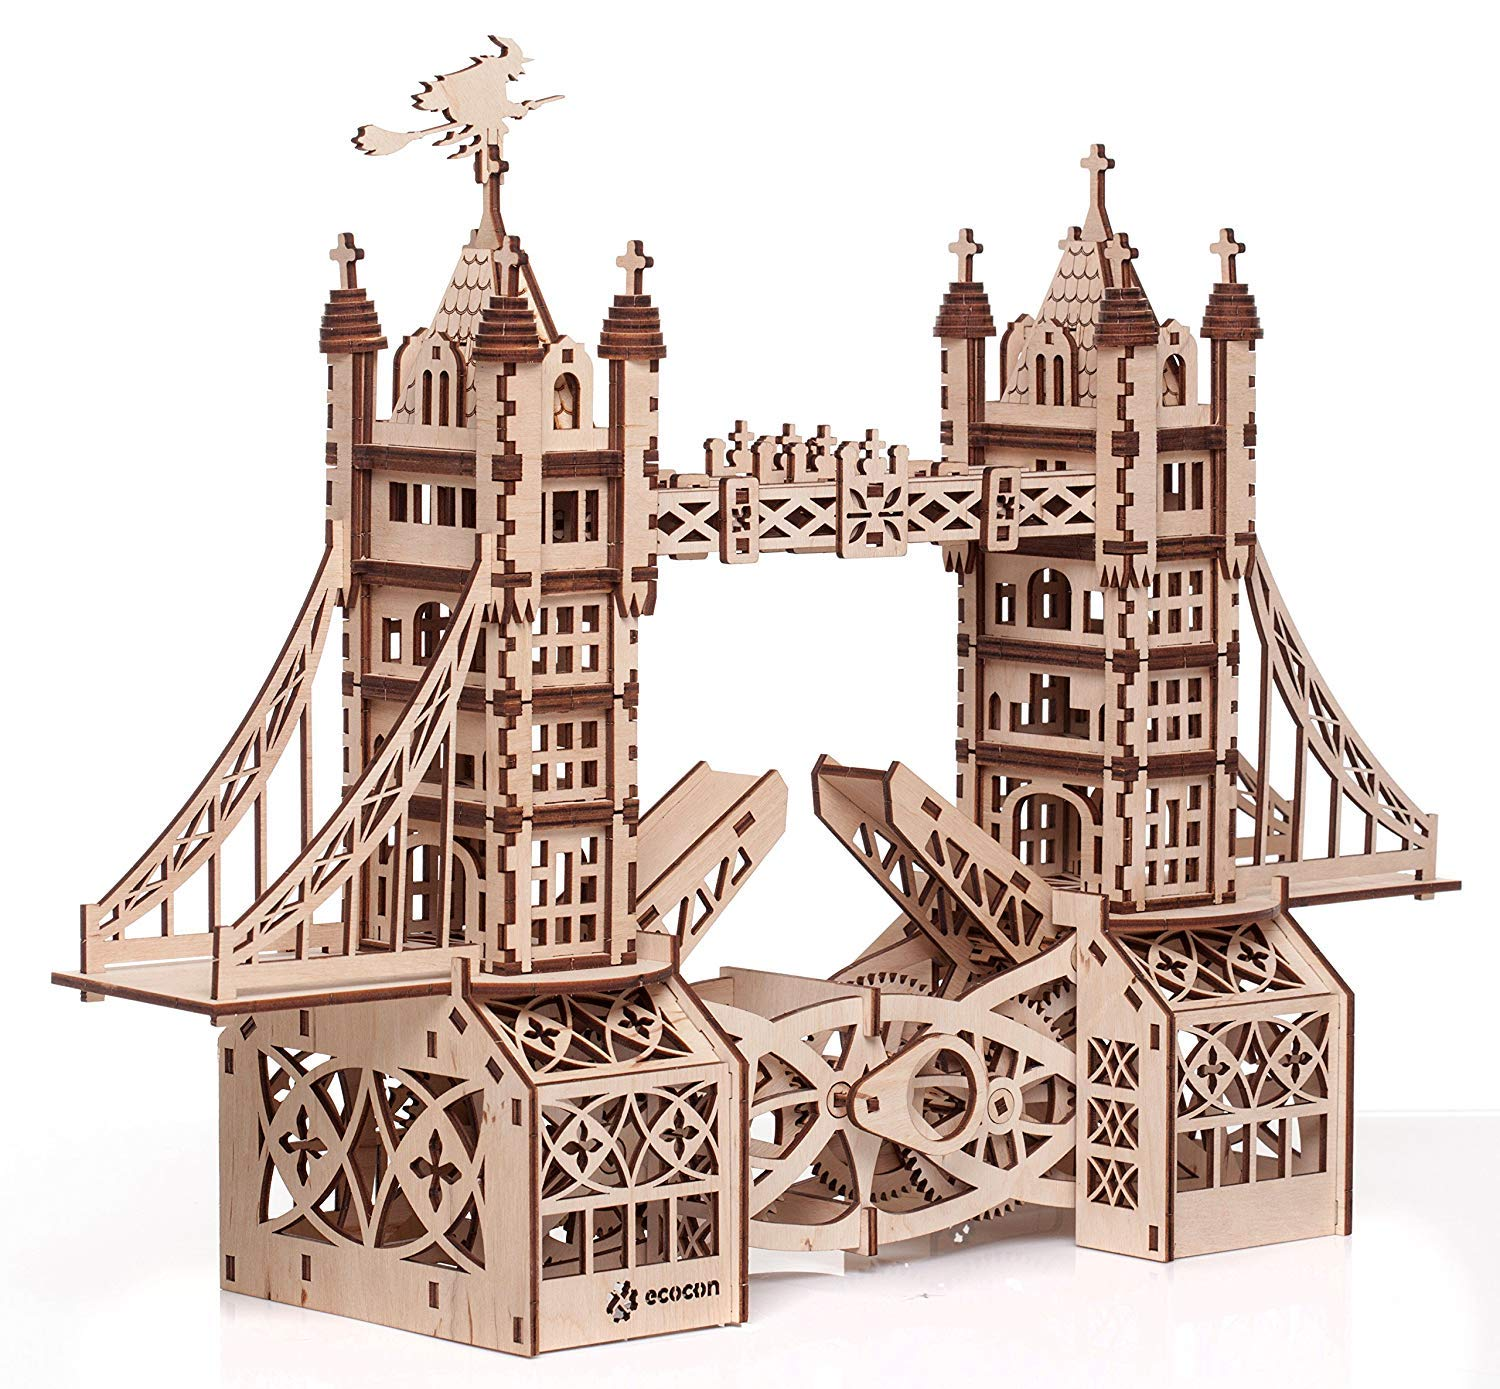 WeißZHE Tower Bridge Animate Mechanisches 3D Puzzle aus Holz